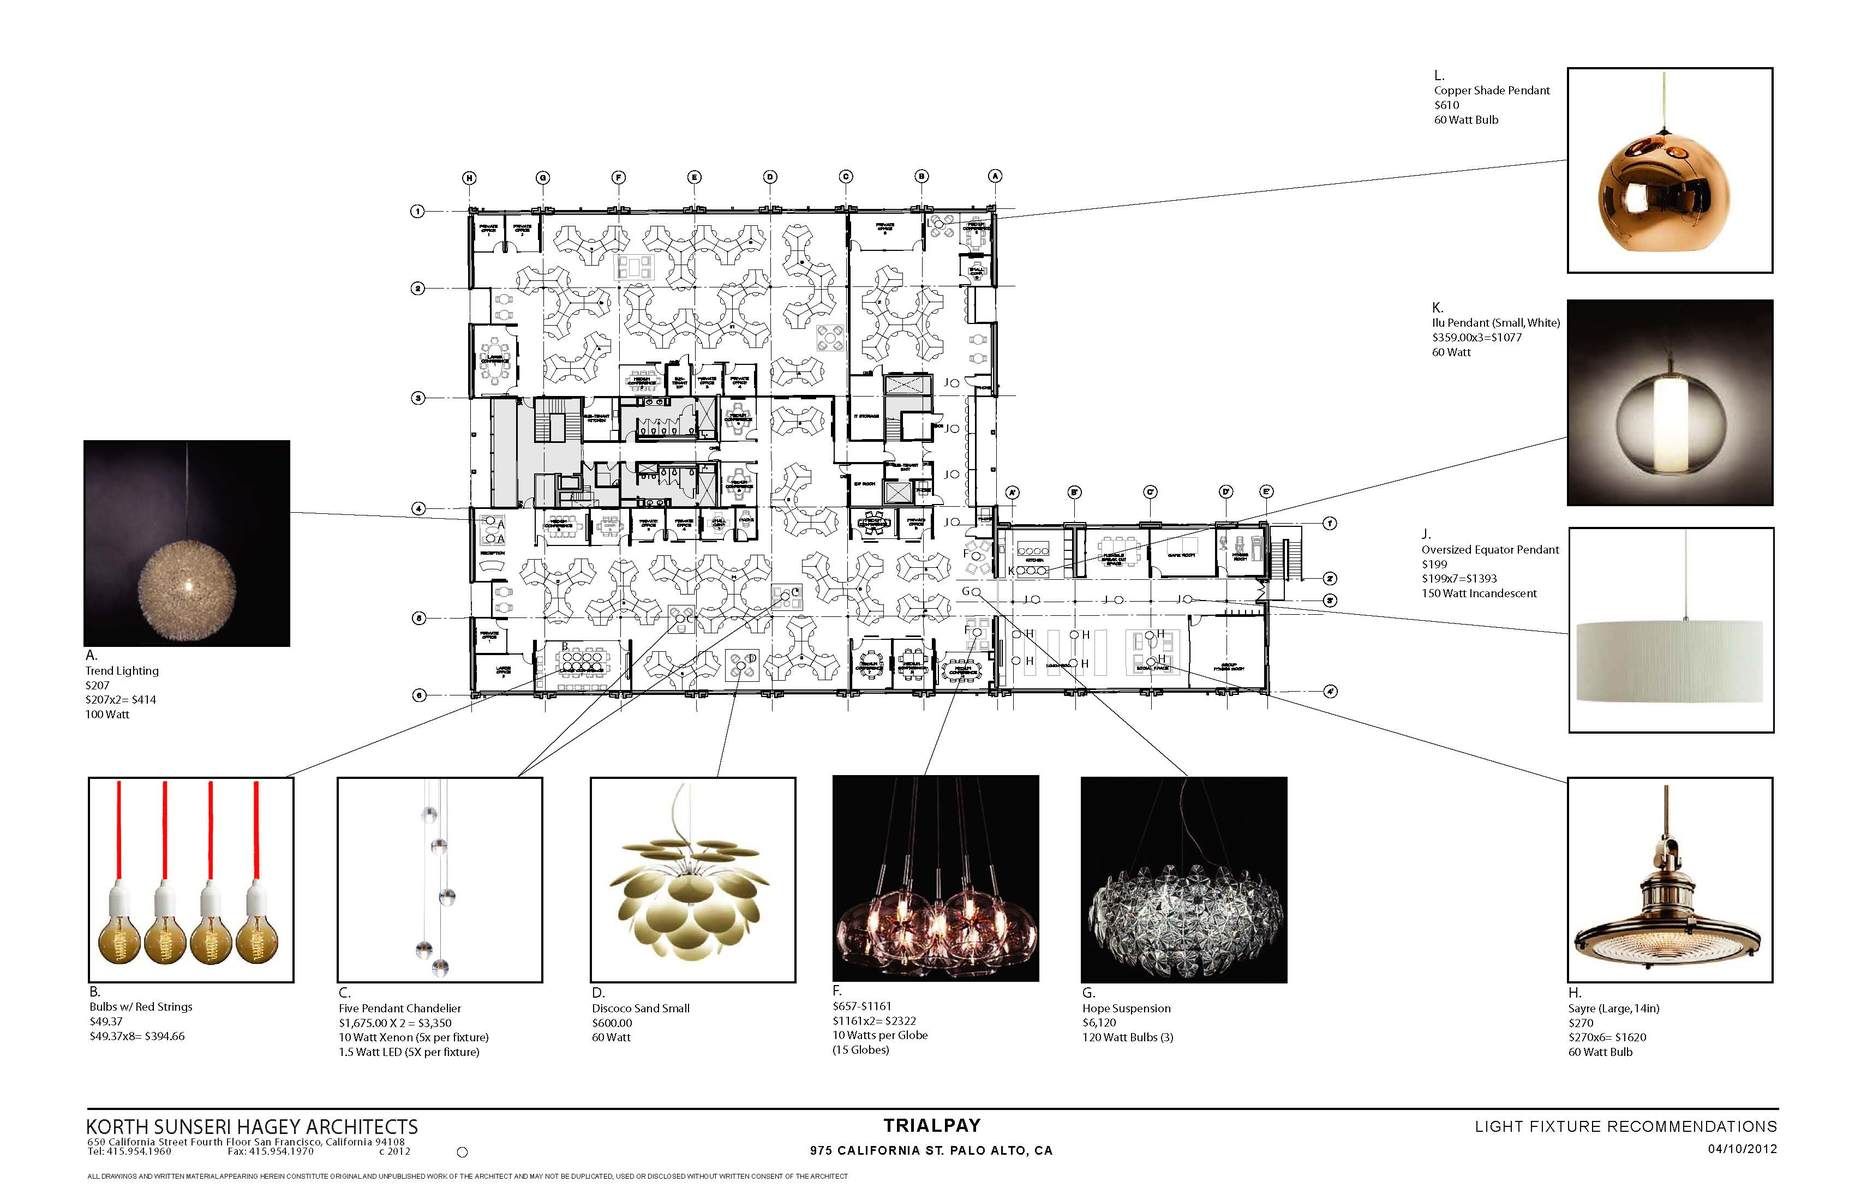 Specialty Light Fixture Recommendation For Client